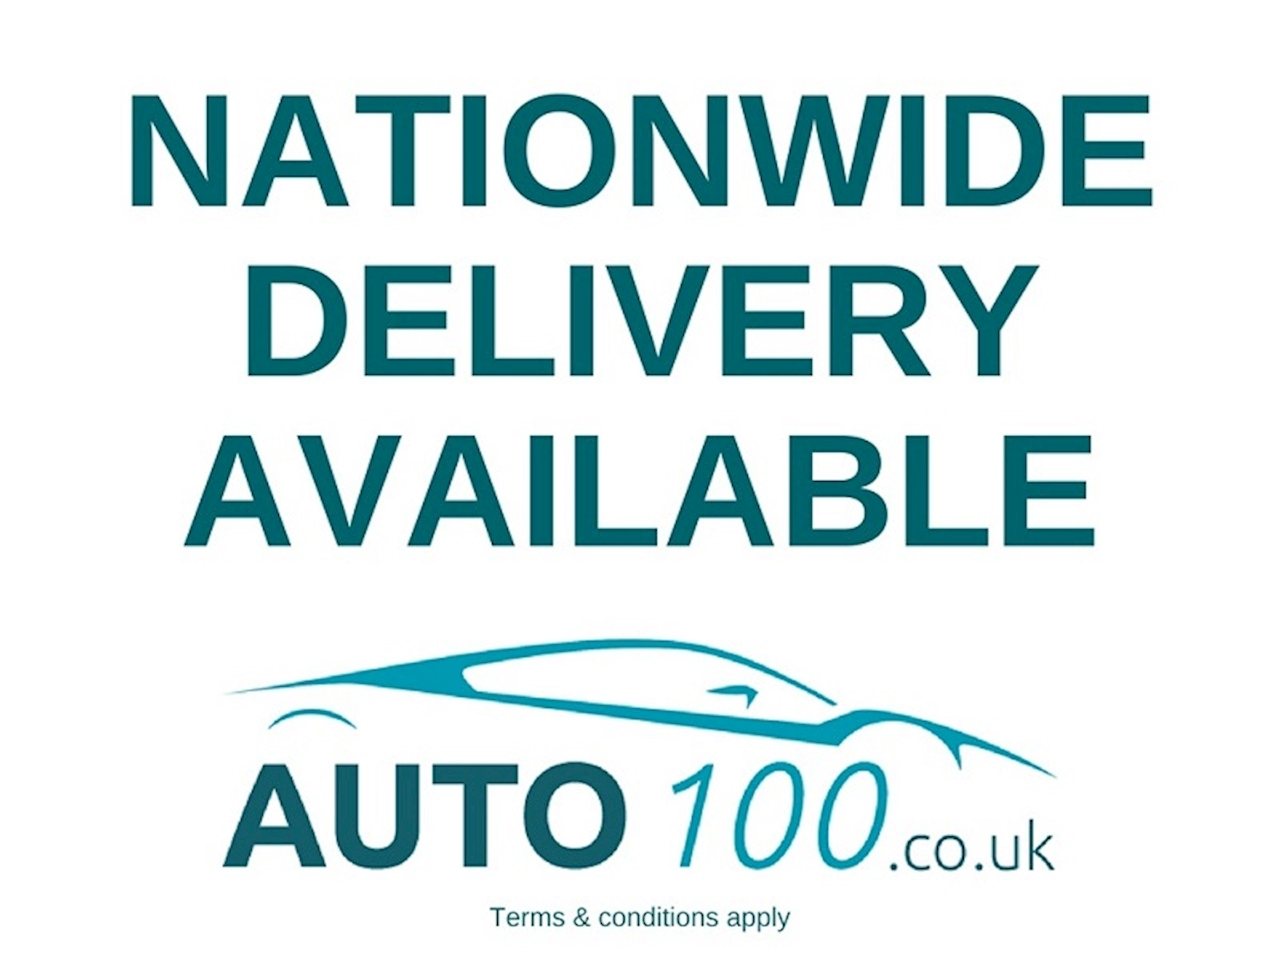 Land Rover 5.0 V8 Autobiography SUV 5dr Petrol Auto 4WD (s/s) (510 ps)